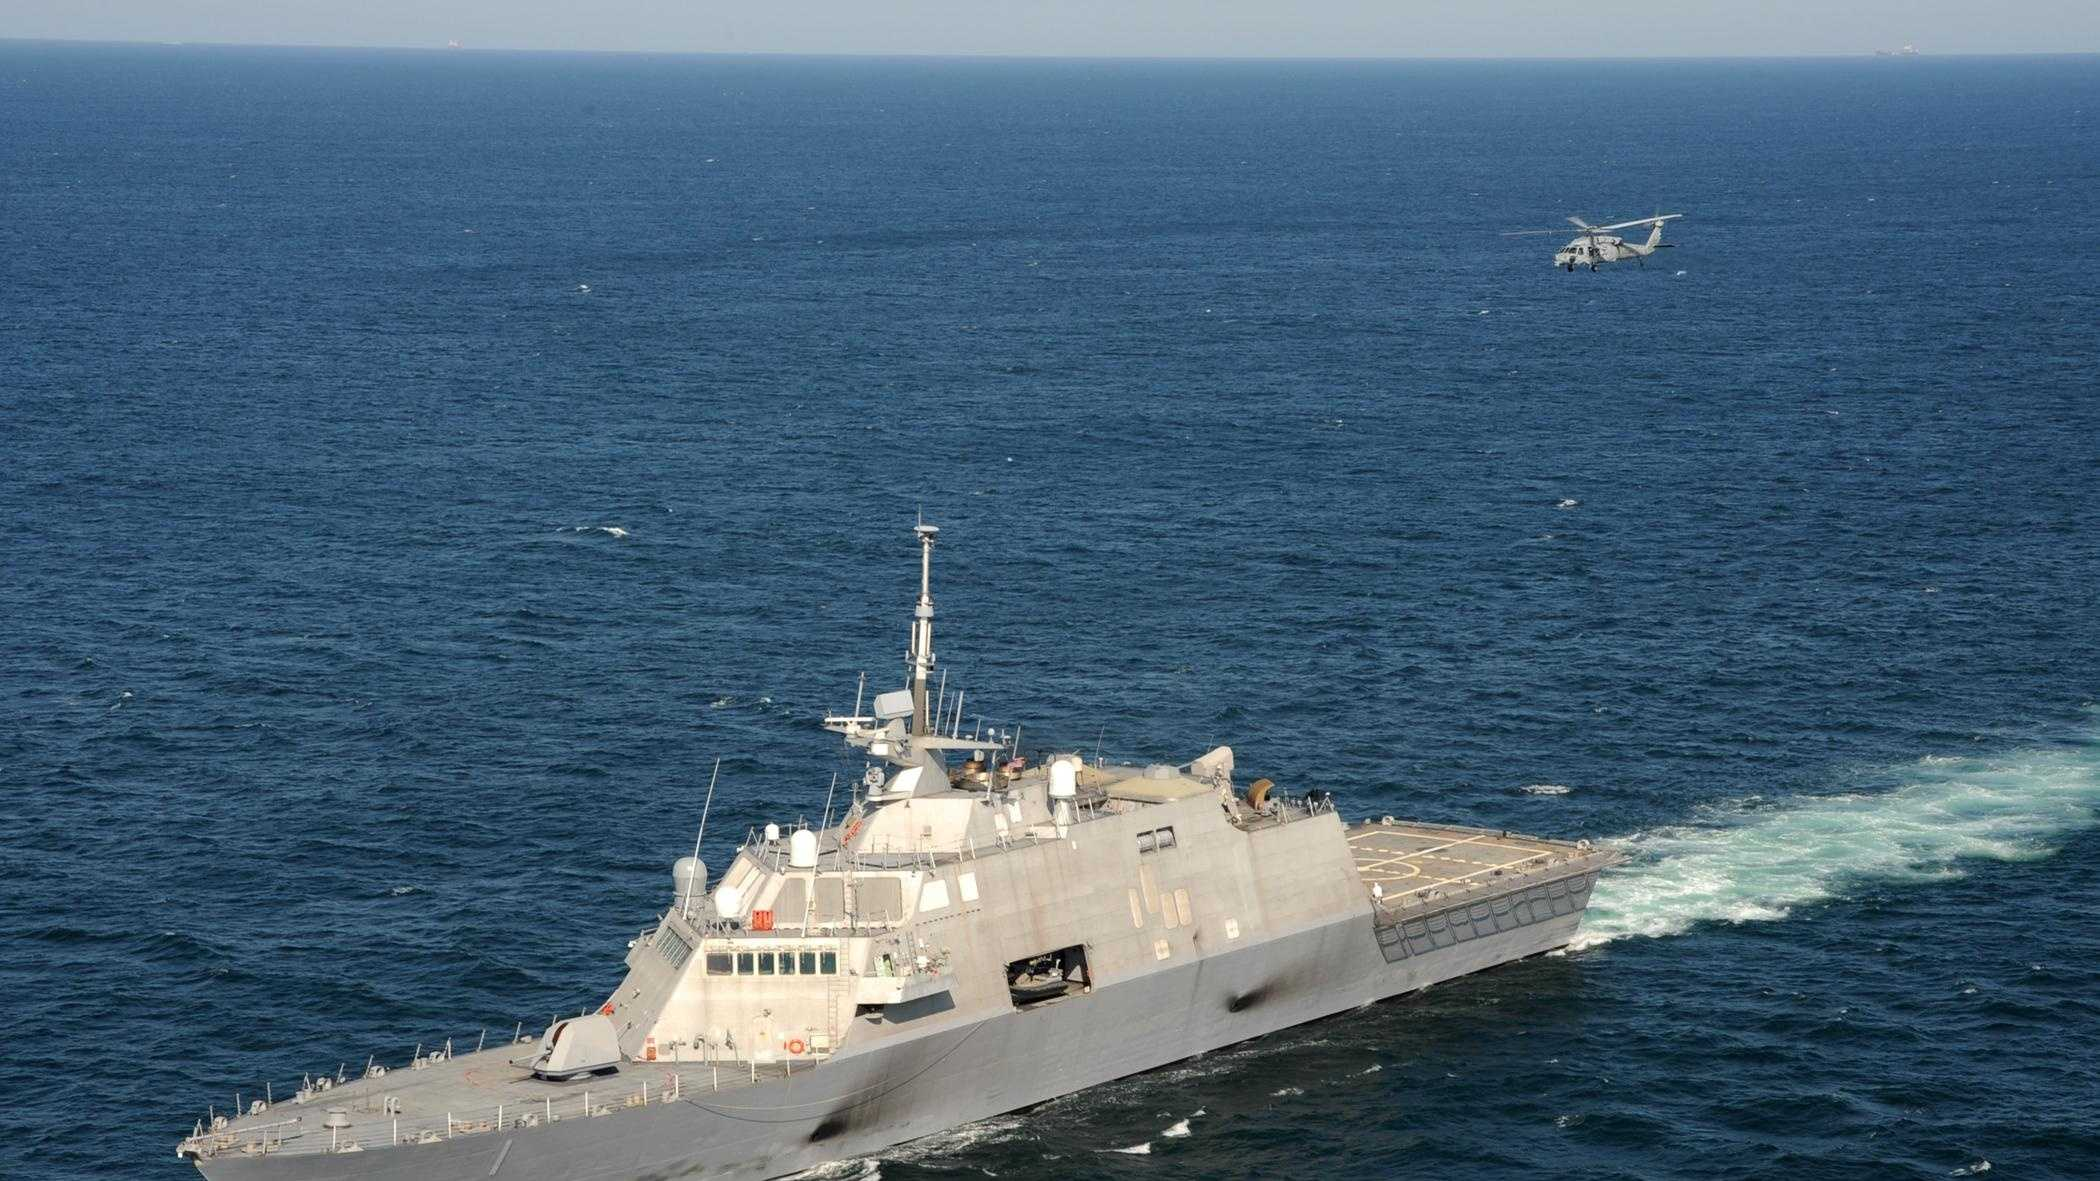 USS Freedom - a Littoral Combat Ship